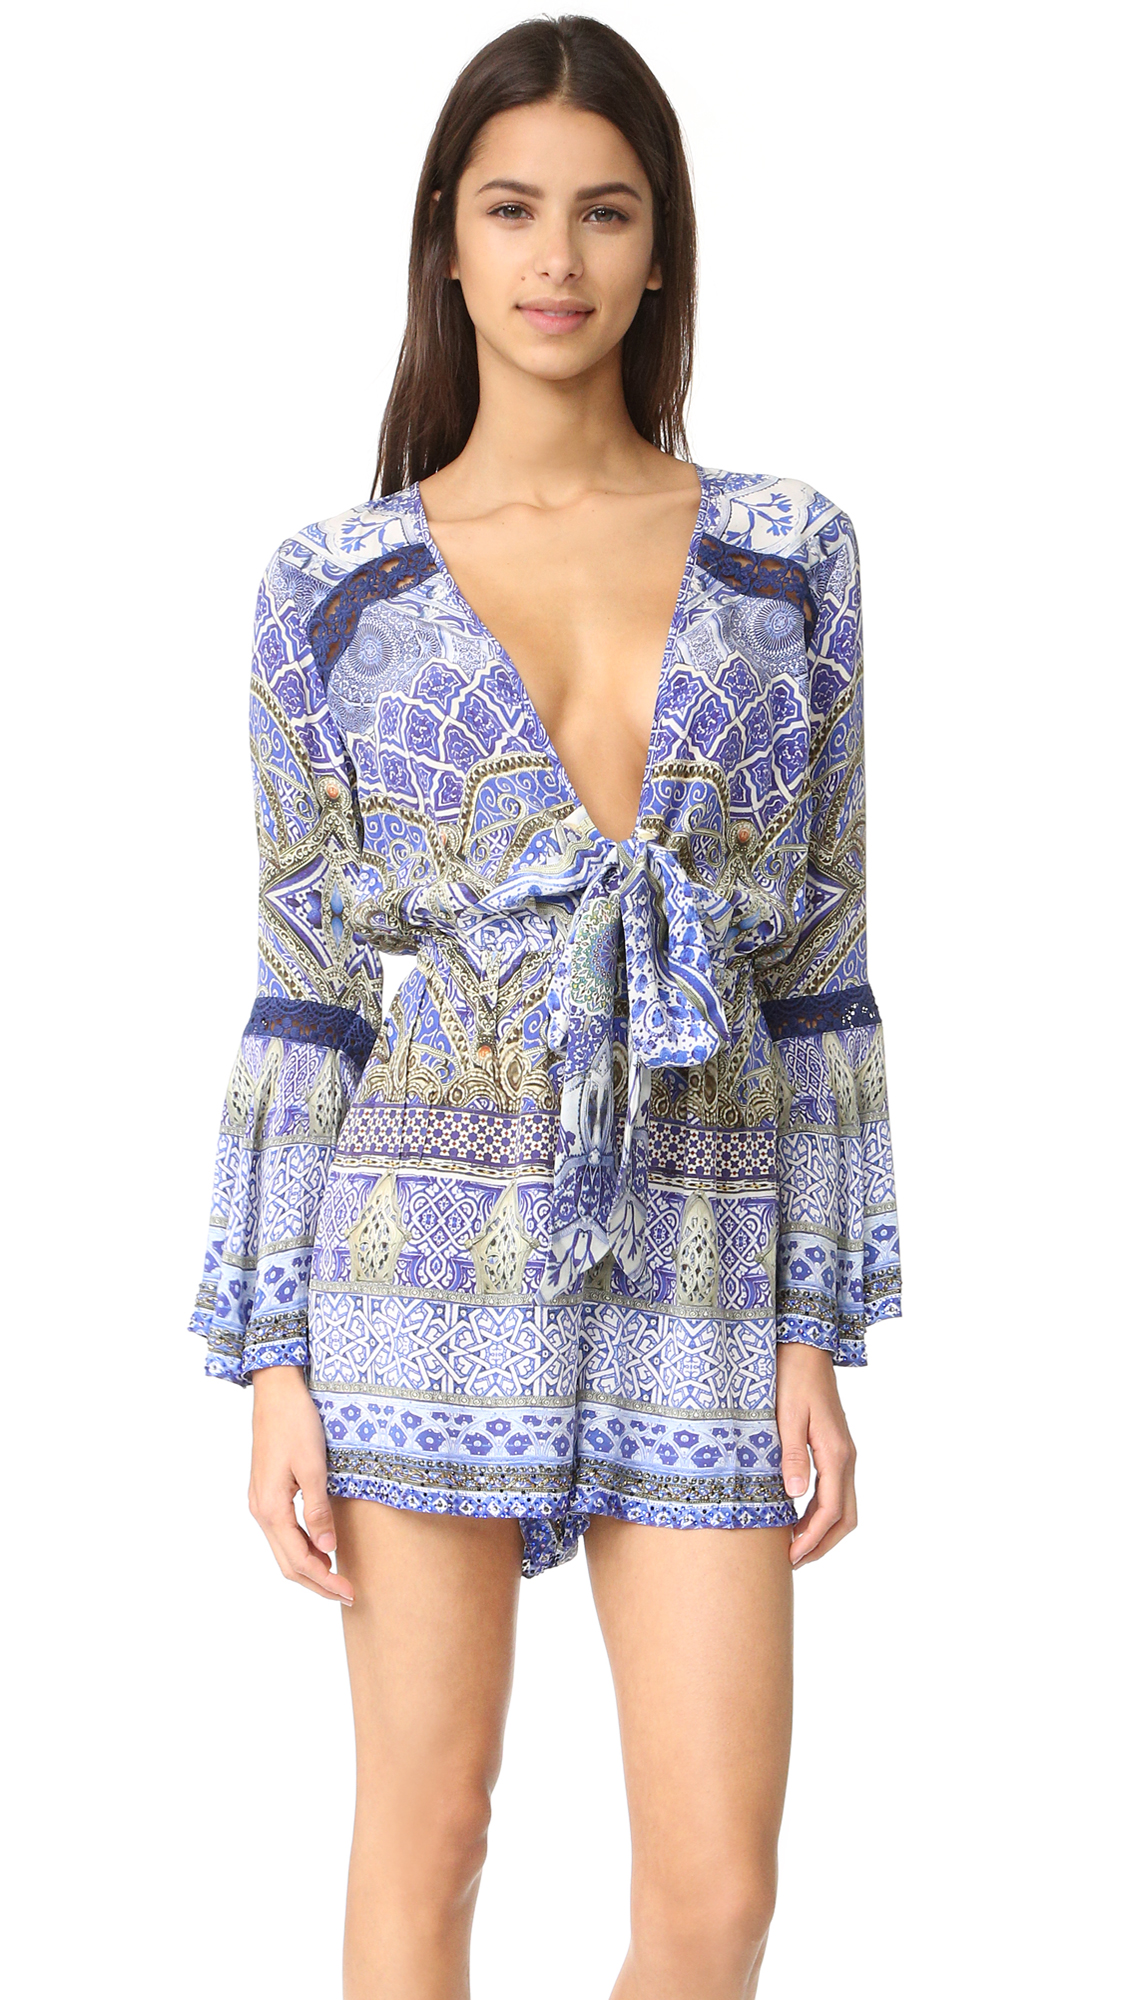 camilla female camilla low front tie waist playsuit all a dream